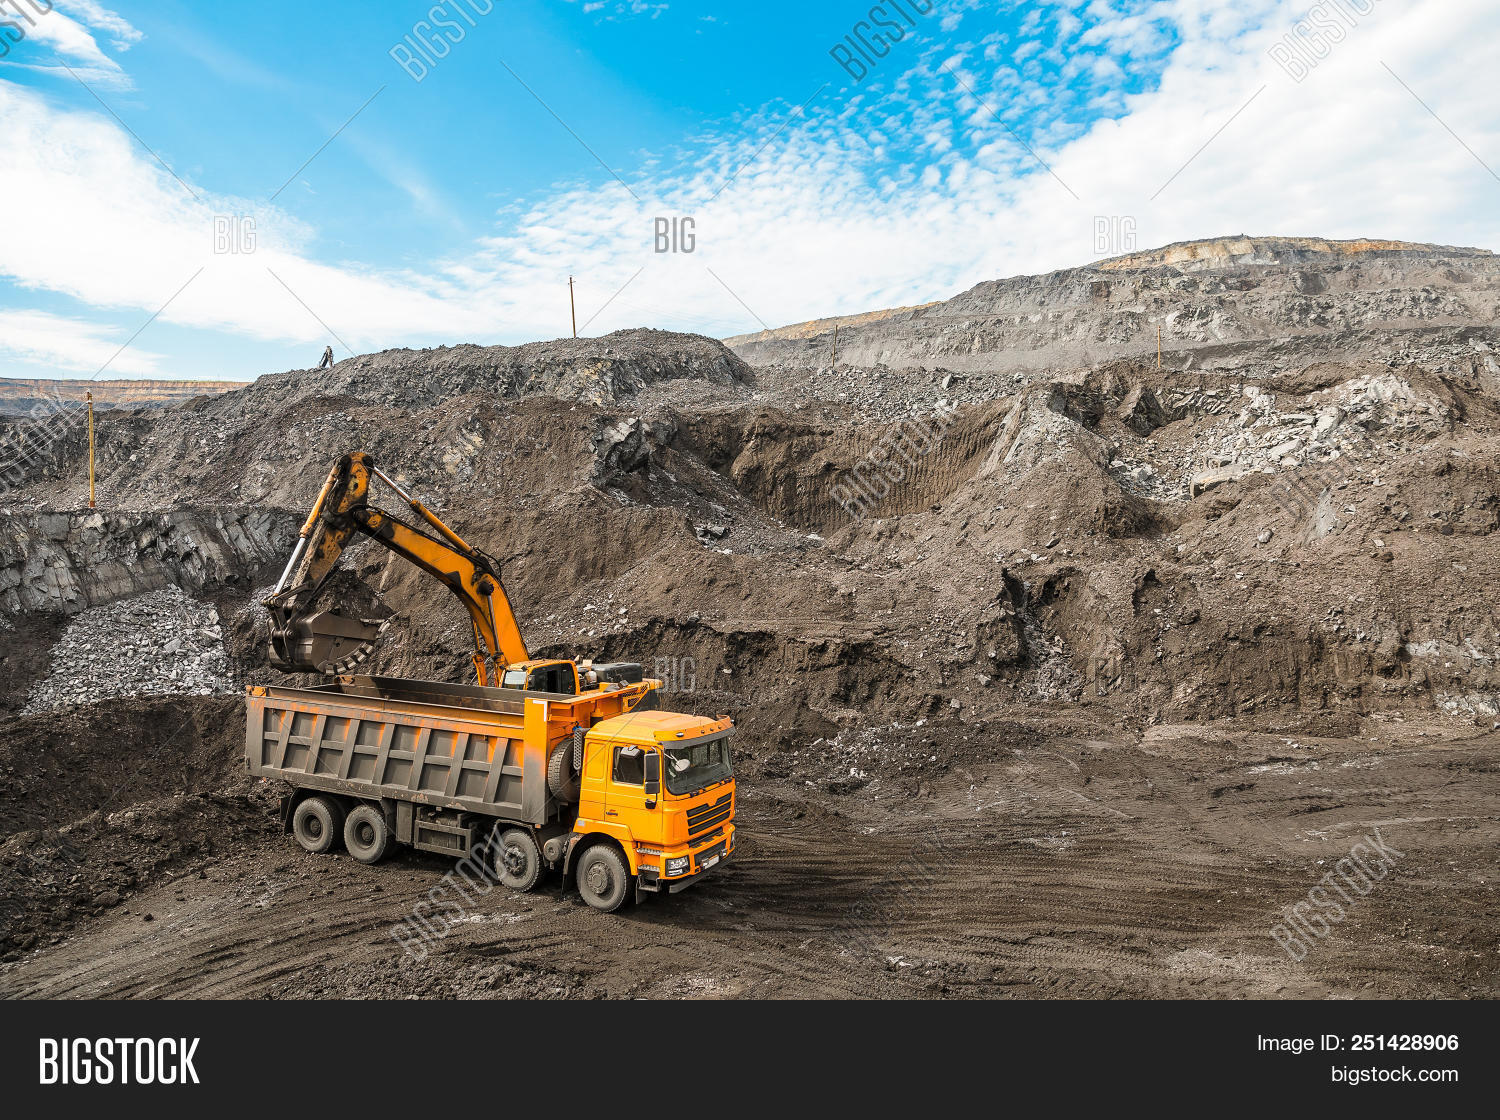 big,car,career,coal,coalmining,construct,construction,dig,dirty,driving,dump,dumper,dumptruck,energy,environment,equipment,excavation,excavator,ground,heavy,huge,industrial,industry,large,loader,machine,machinery,mine,miner,mining,mover,opencast,ore,oversized,power,production,quarry,rock,stone,tractor,transport,transportation,truck,vehicle,wheel,work